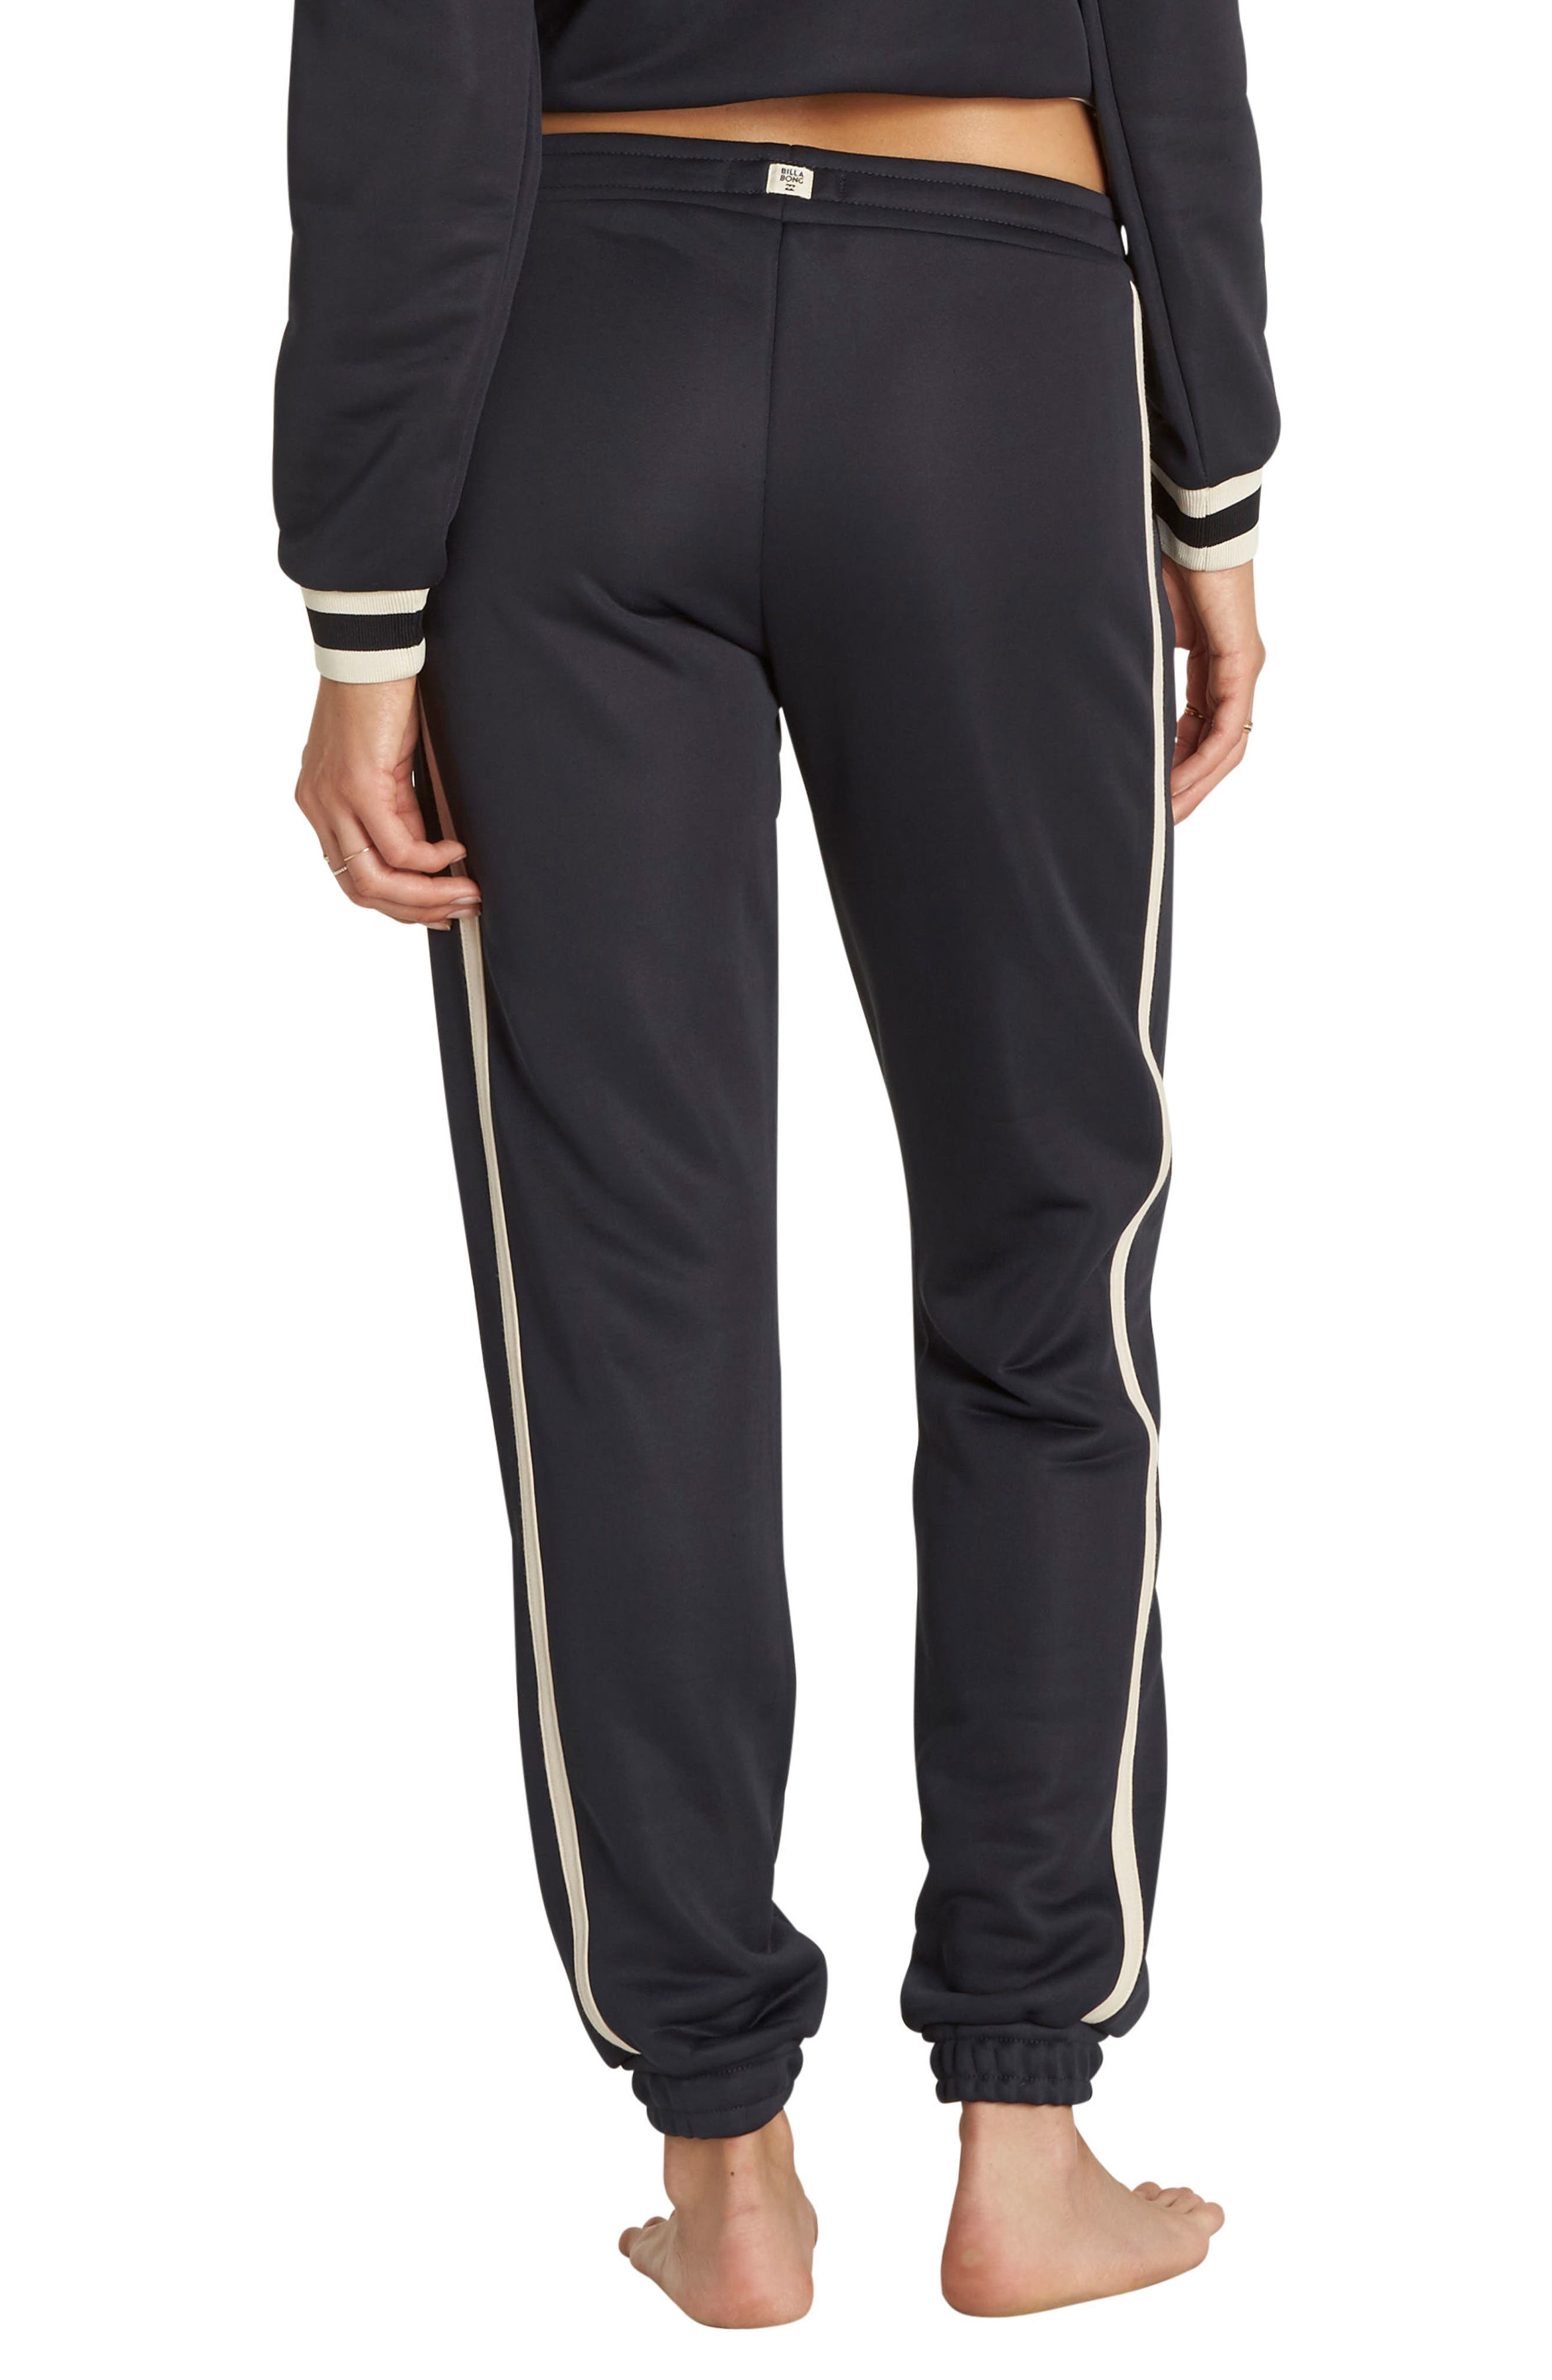 Current Mood Jogger Pants,                             Alternate thumbnail 2, color,